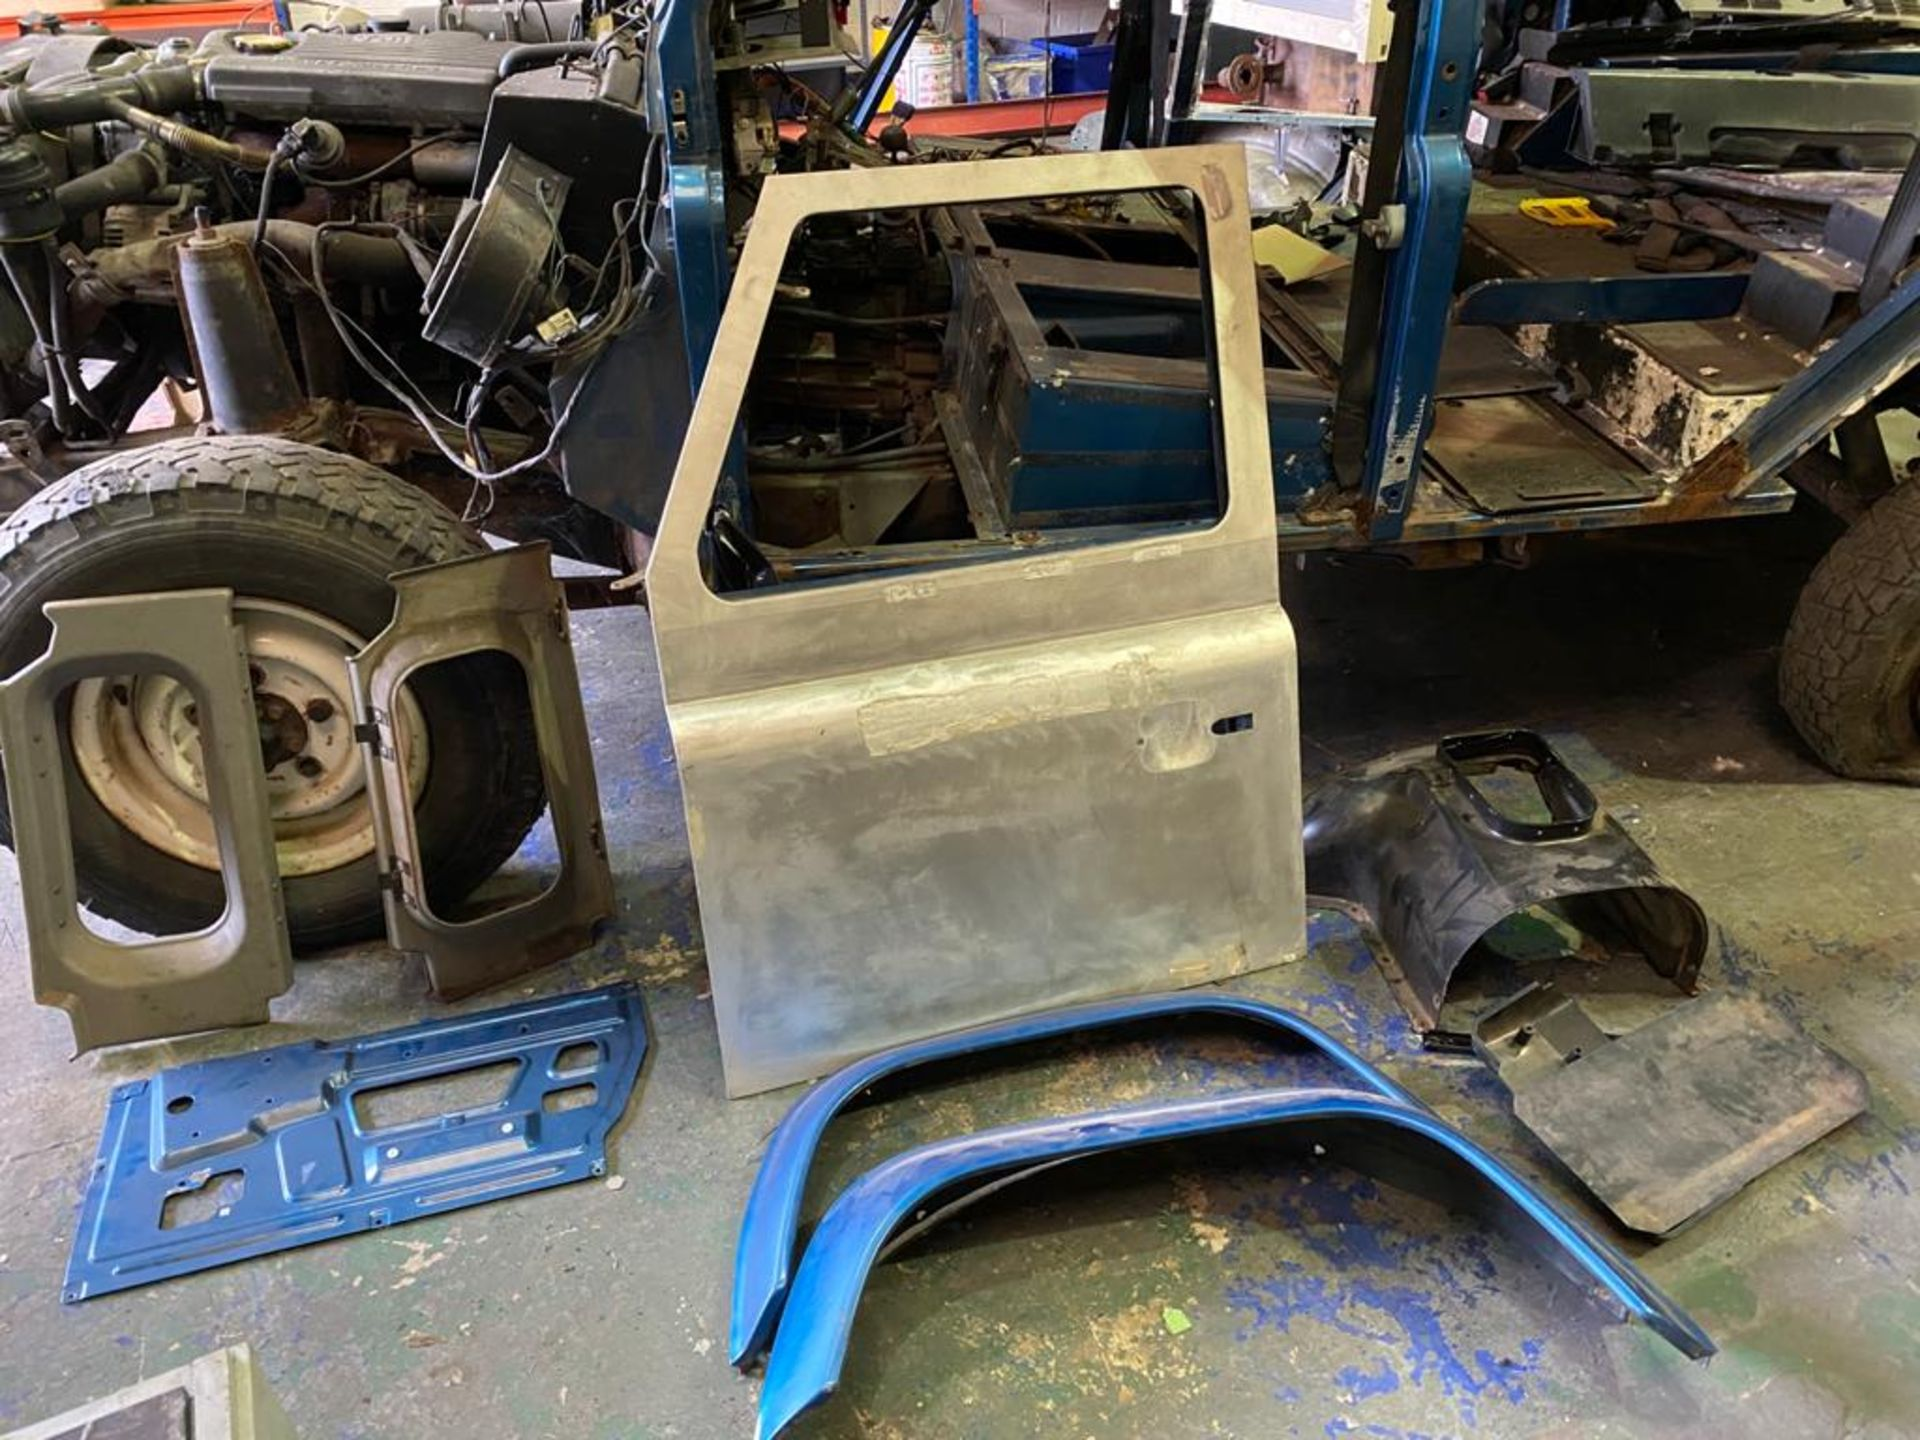 Land Rover 110 County, 300 TDI Engine Appears Mostly Complete - No Bumper, Bonnet, Glass etc As - Image 12 of 26